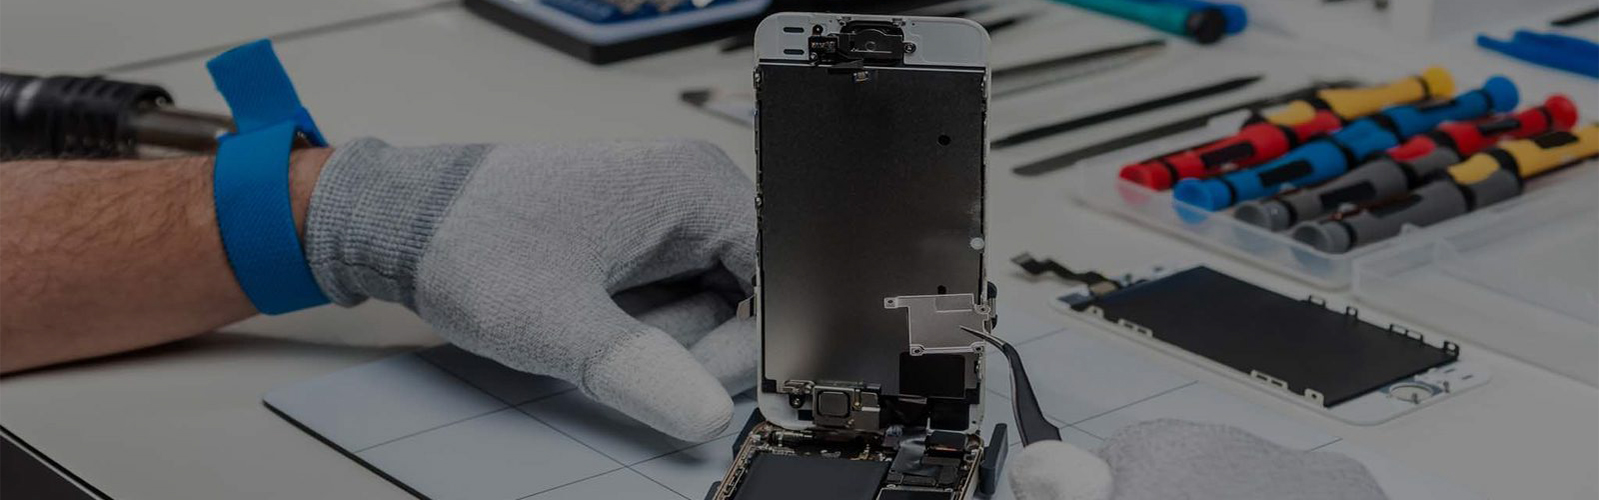 On-site iPhone Screen Repair Center in New York | iStore NJ, NYC & Parsippany